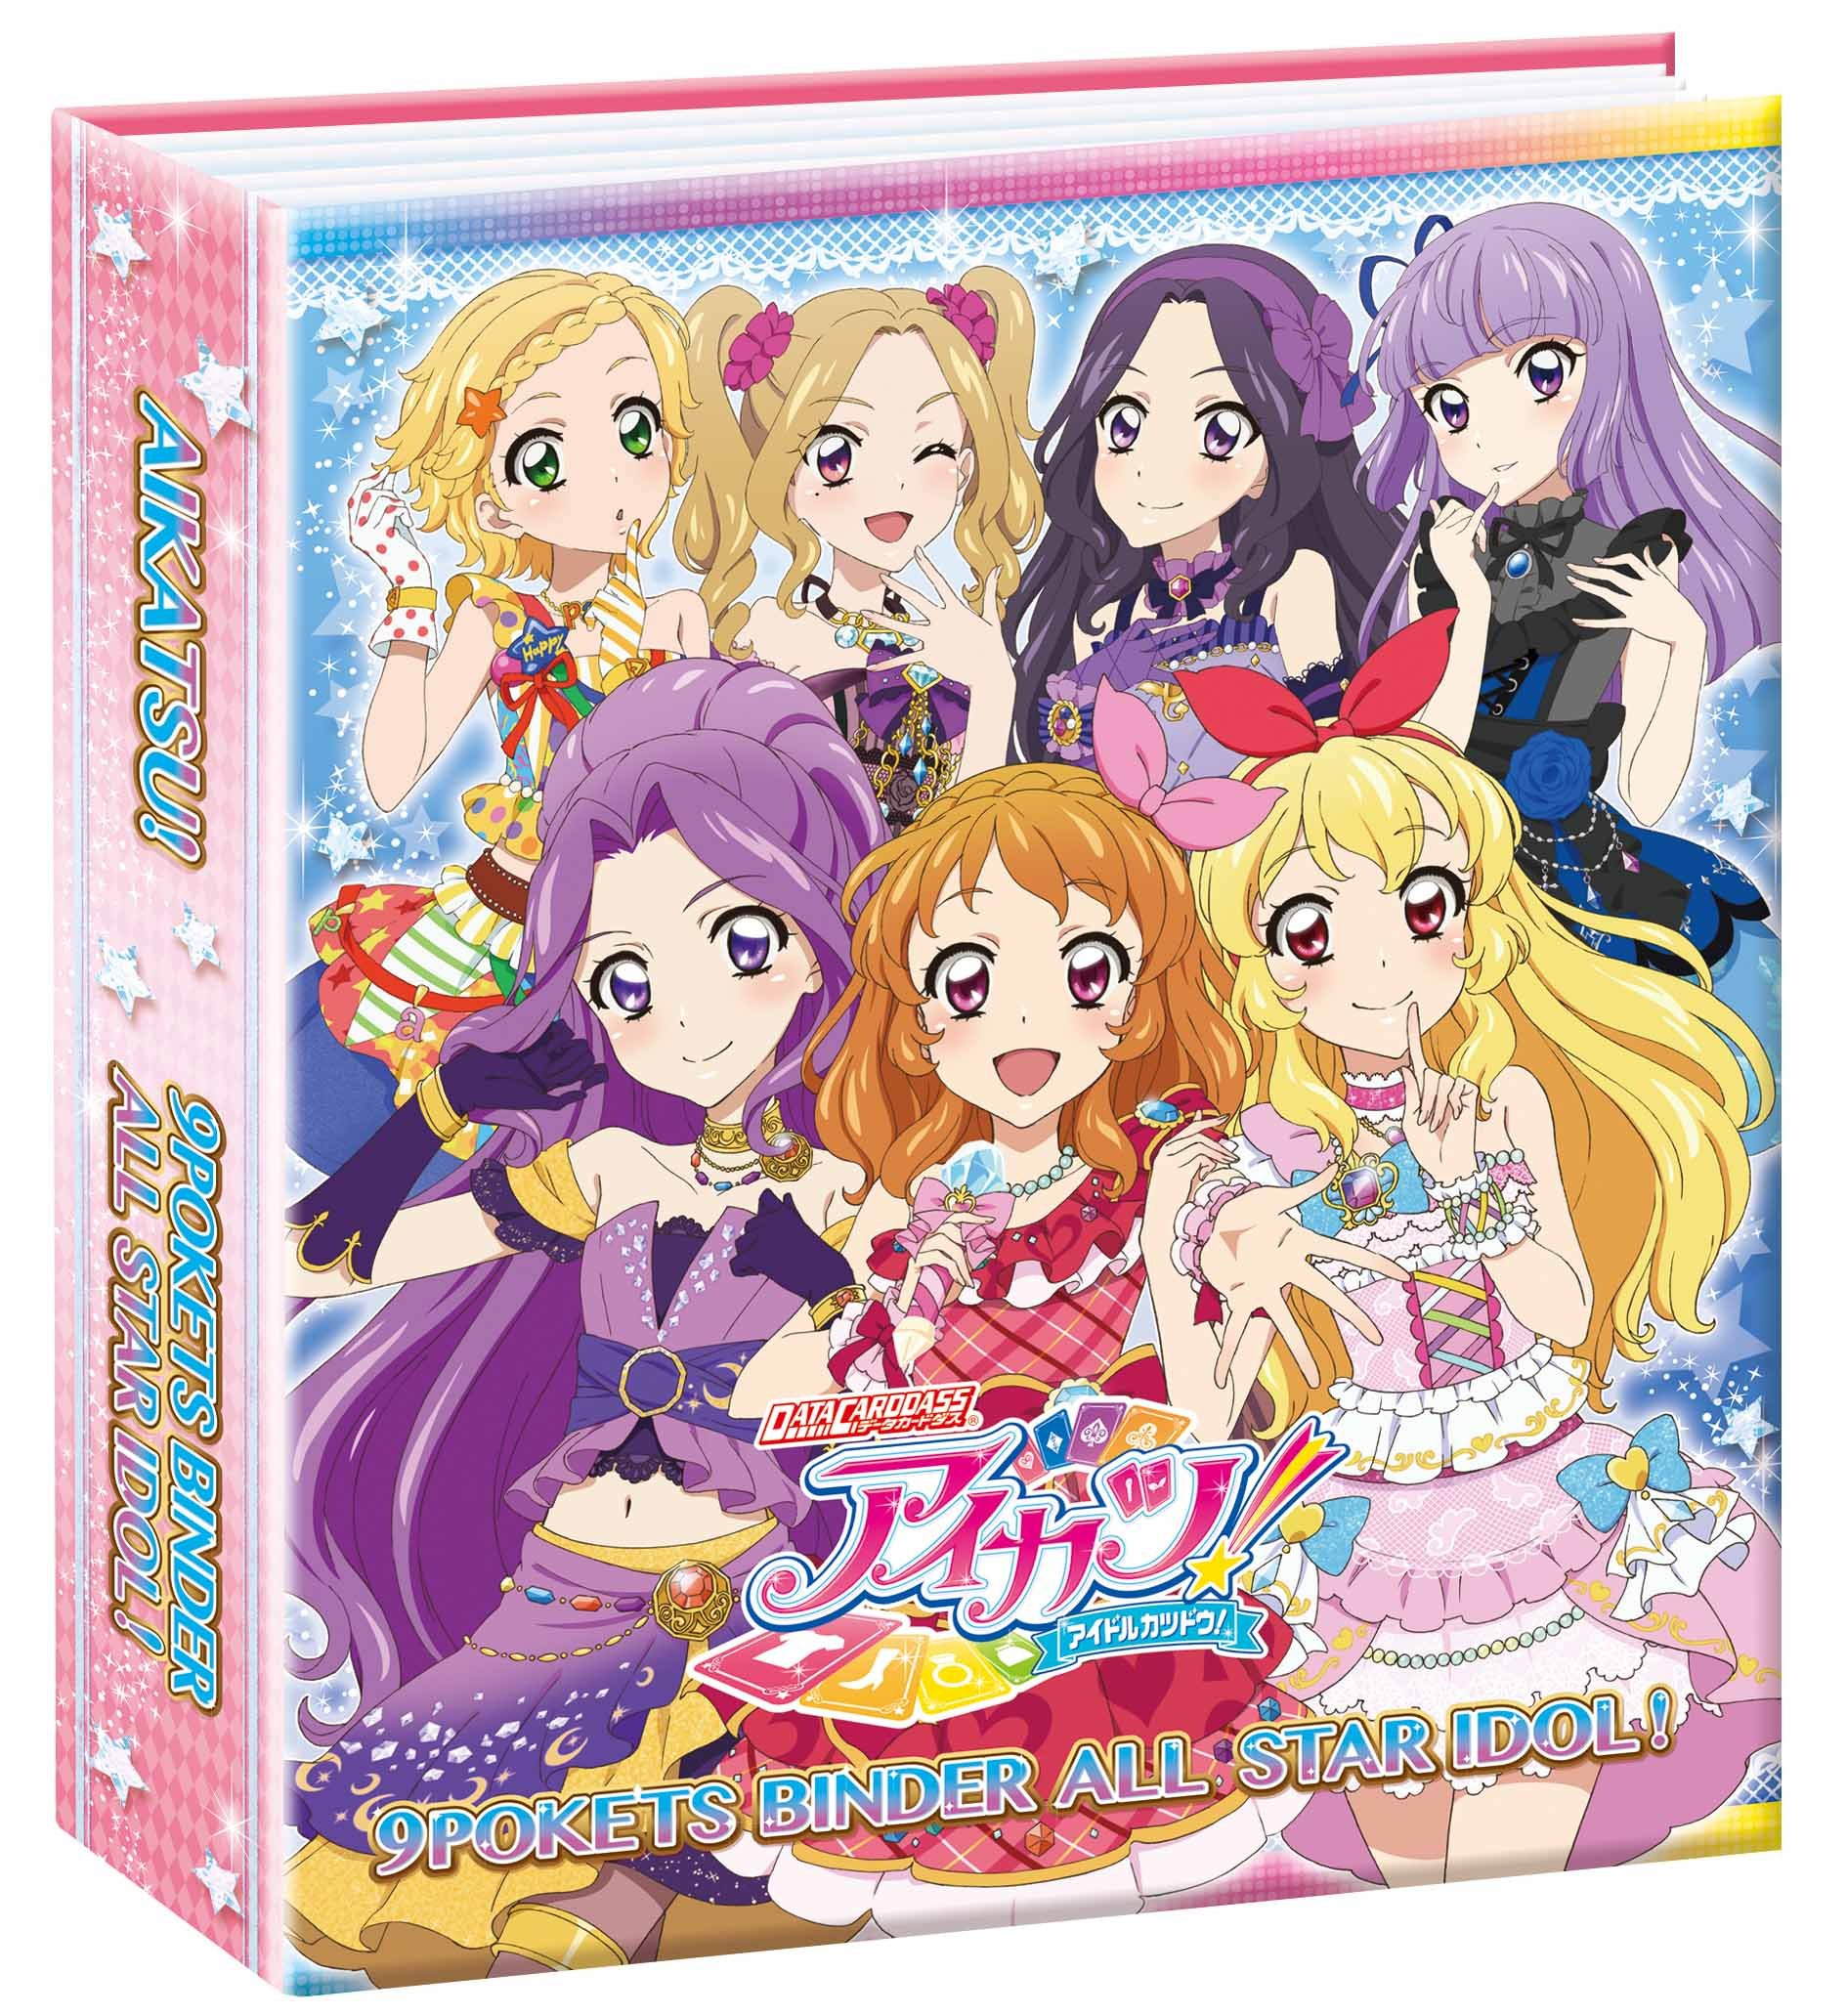 Data Cardass Aikatsu! 9 pocket binder set ALL STAR IDOL